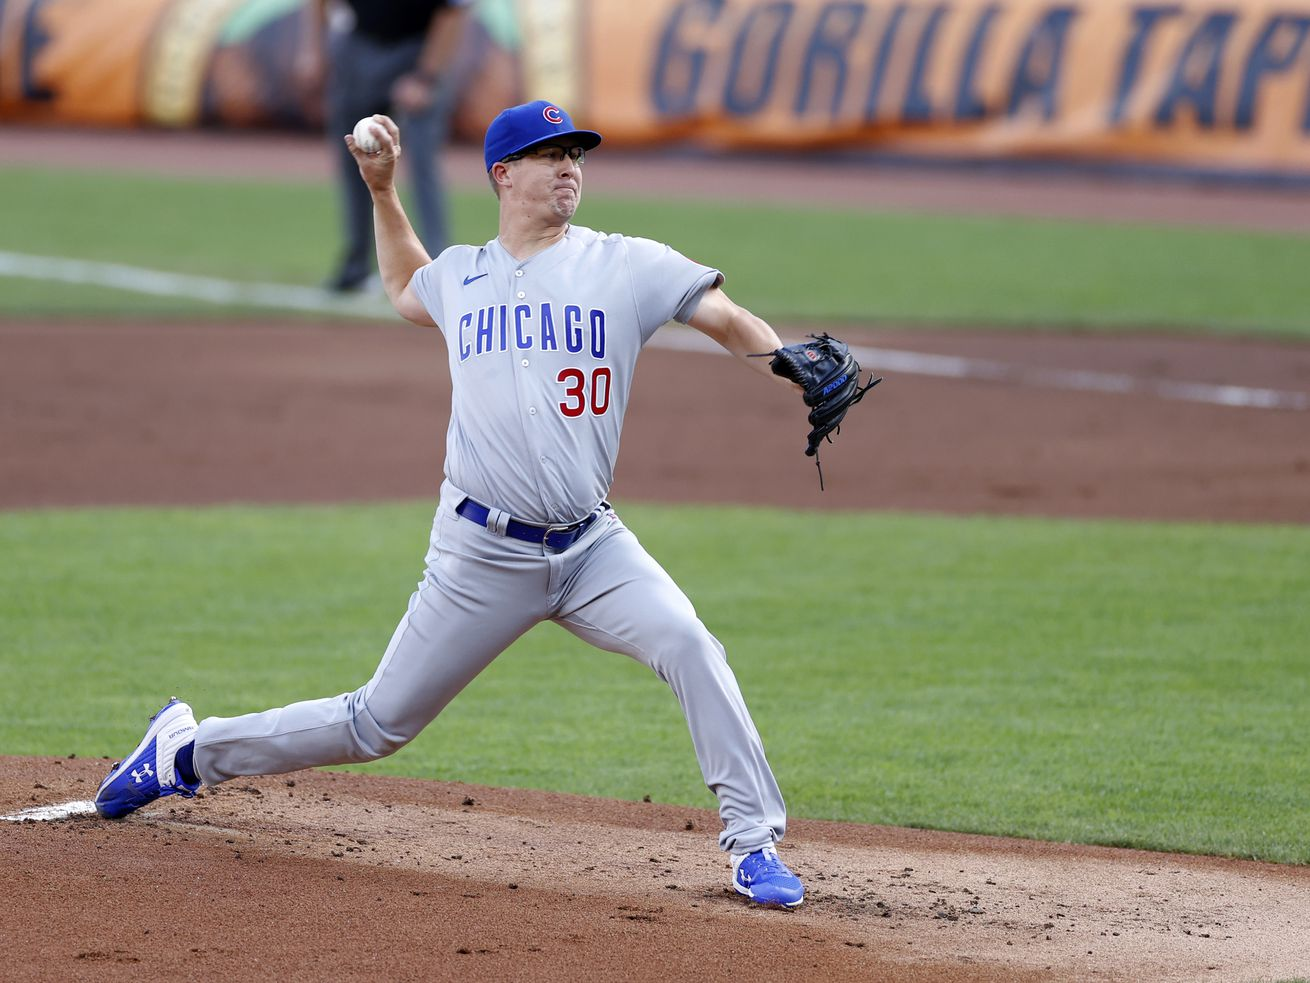 Cubs' rotation continues to be bright spot early in the season